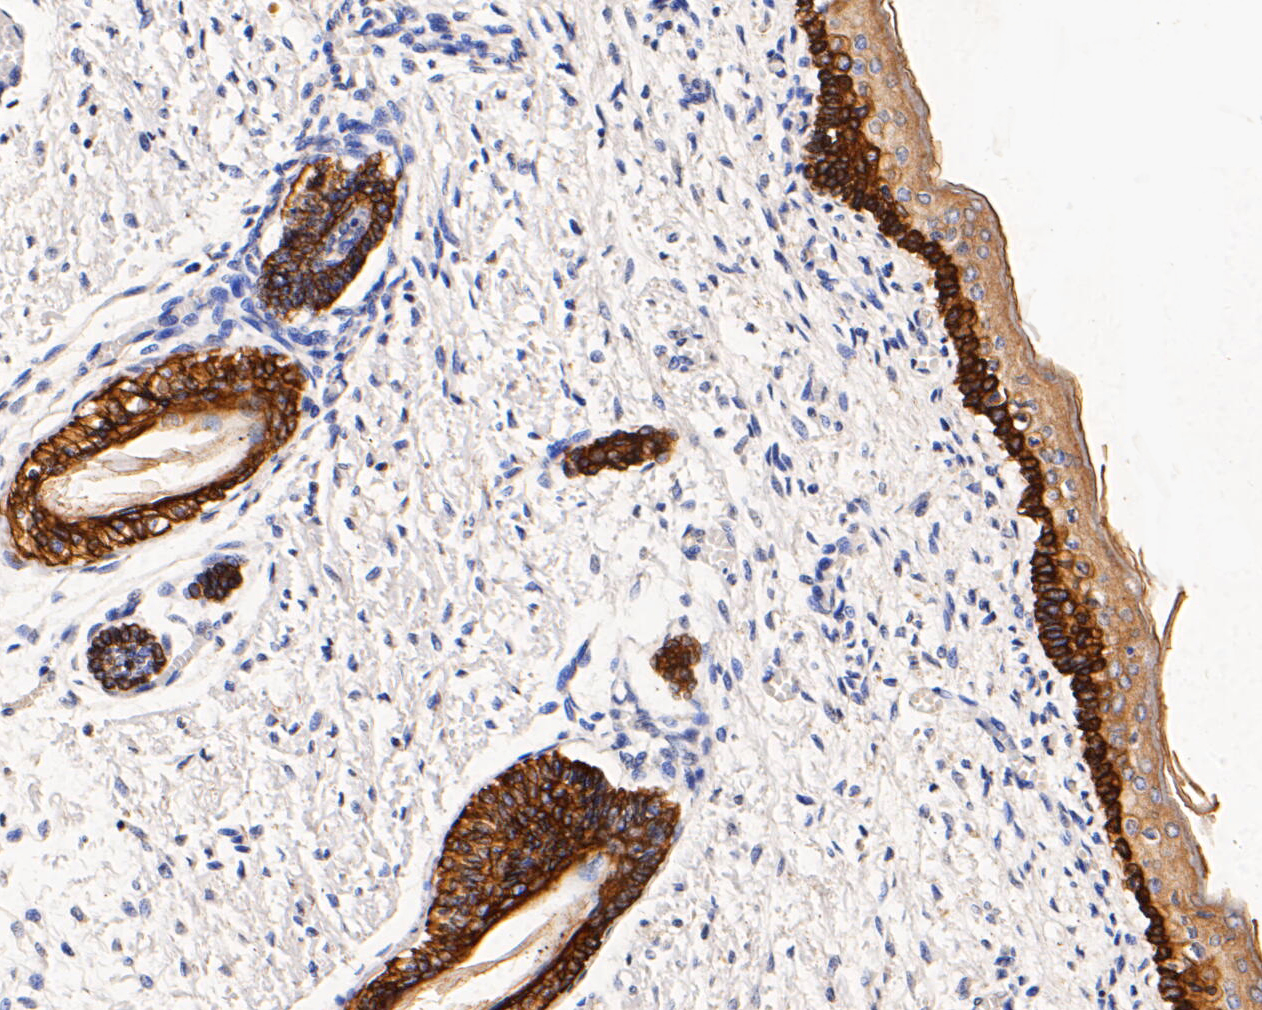 Immunohistochemical analysis of paraffin-embedded human skin tissue using anti-Cytokeratin 14 antibody. The section was pre-treated using heat mediated antigen retrieval with Tris-EDTA buffer (pH 8.0-8.4) for 20 minutes.The tissues were blocked in 5% BSA for 30 minutes at room temperature, washed with ddH2O and PBS, and then probed with the primary antibody (, 1/200) for 30 minutes at room temperature. The detection was performed using an HRP conjugated compact polymer system. DAB was used as the chromogen. Tissues were counterstained with hematoxylin and mounted with DPX.